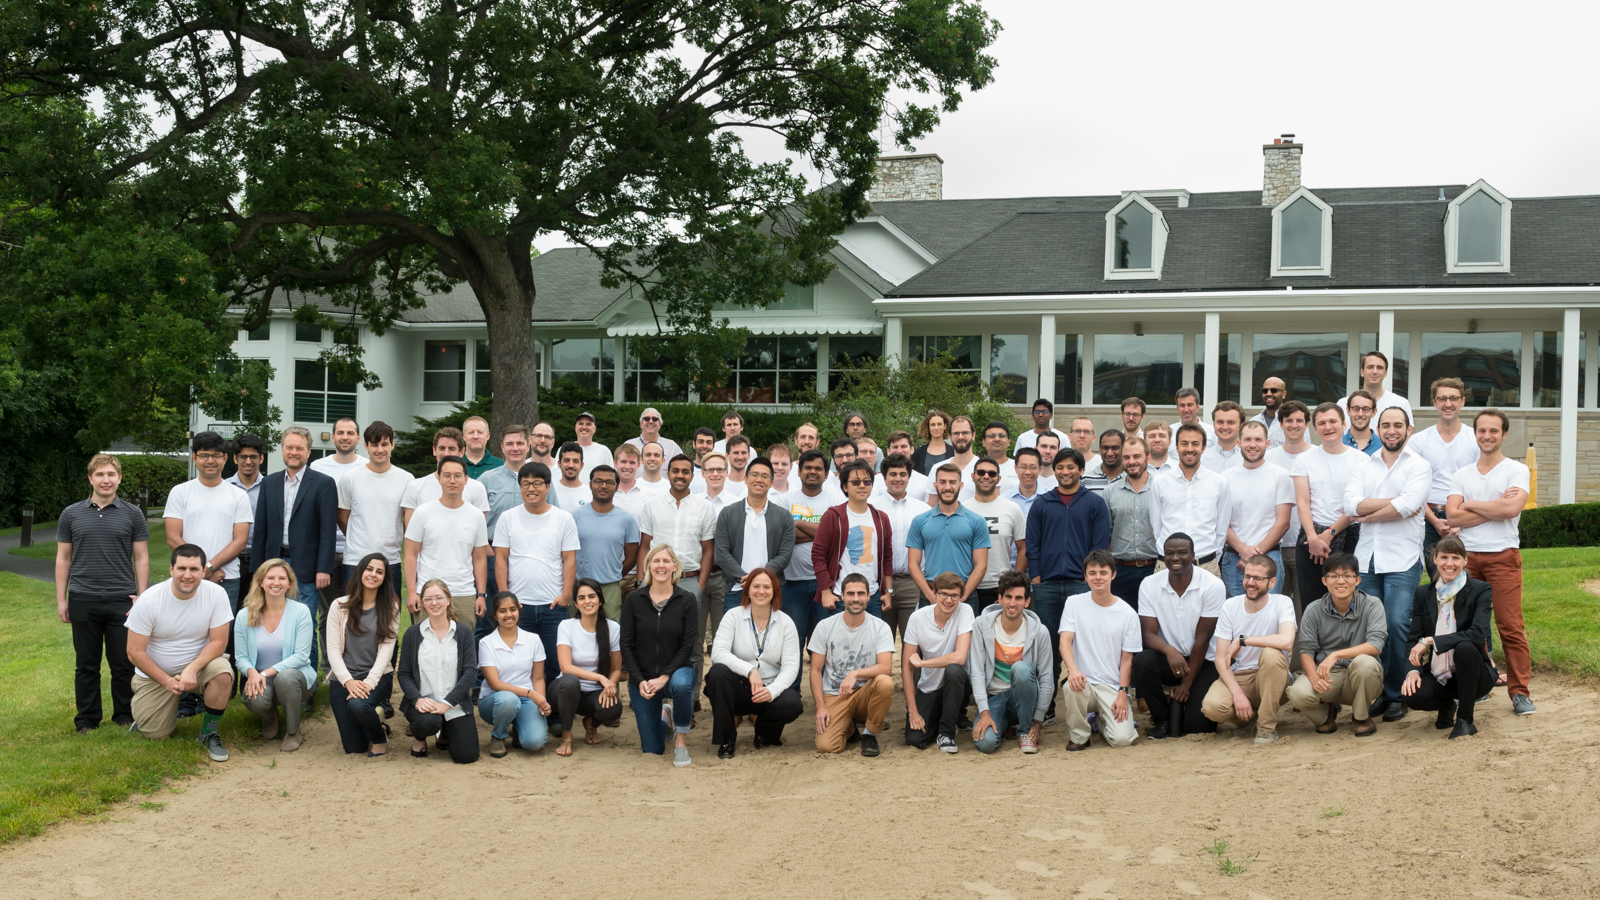 Seventy scientists — graduate students, computational scientists, and postdoctoral and early-career researchers — attended the fifth annual Argonne Training Program on Extreme-Scale Computing (ATPESC) in St. Charles, Illinois.